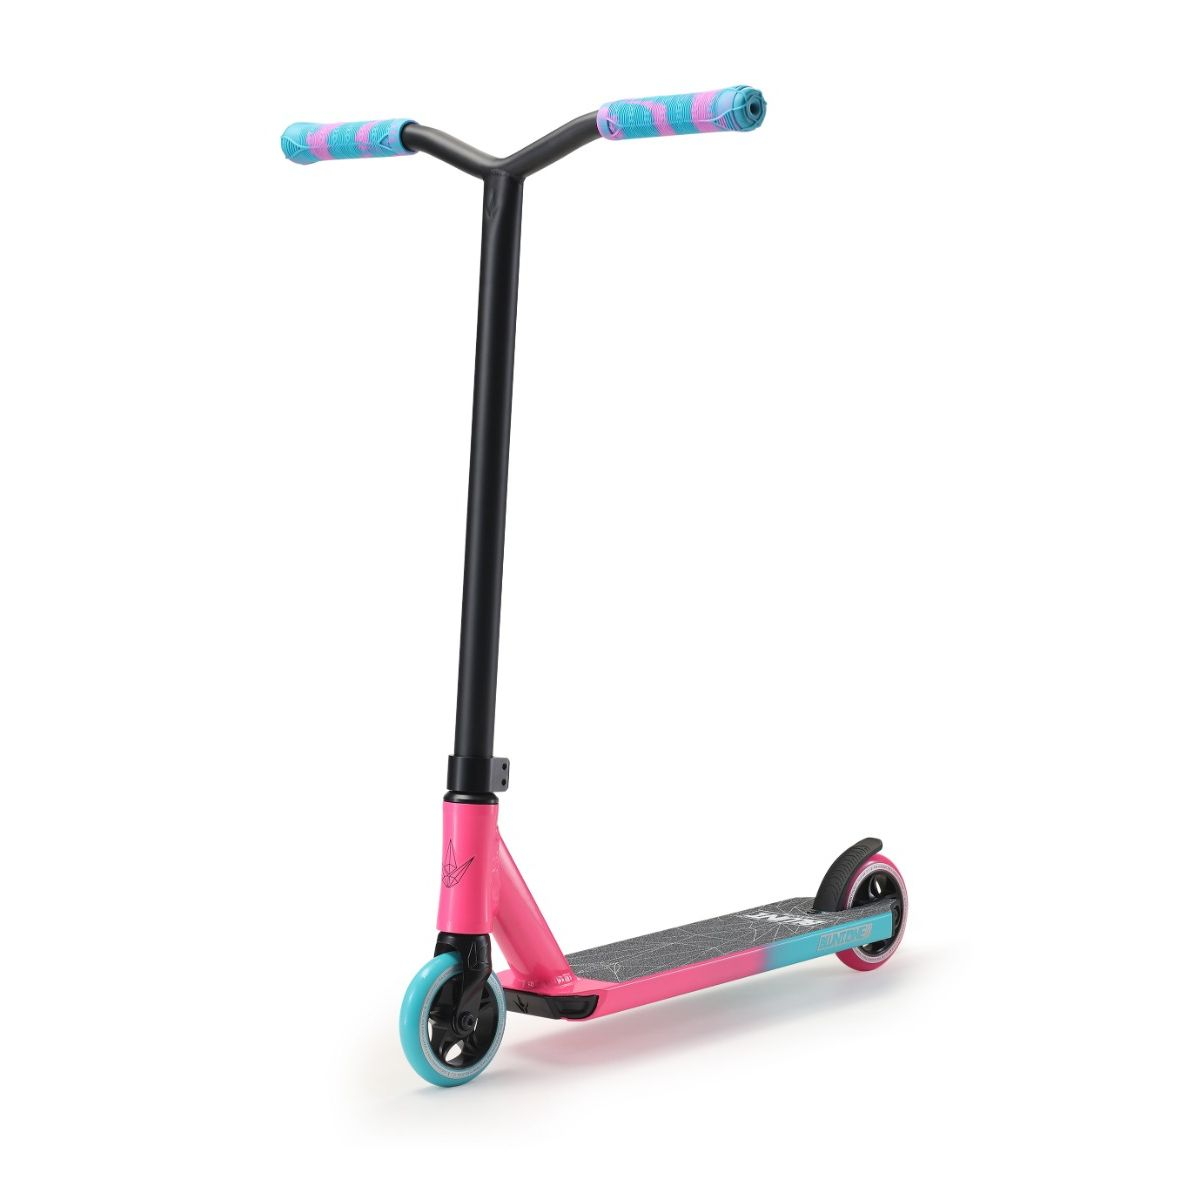 Freestyle kolobežka Blunt One S3 Scooter - Pink/Teal